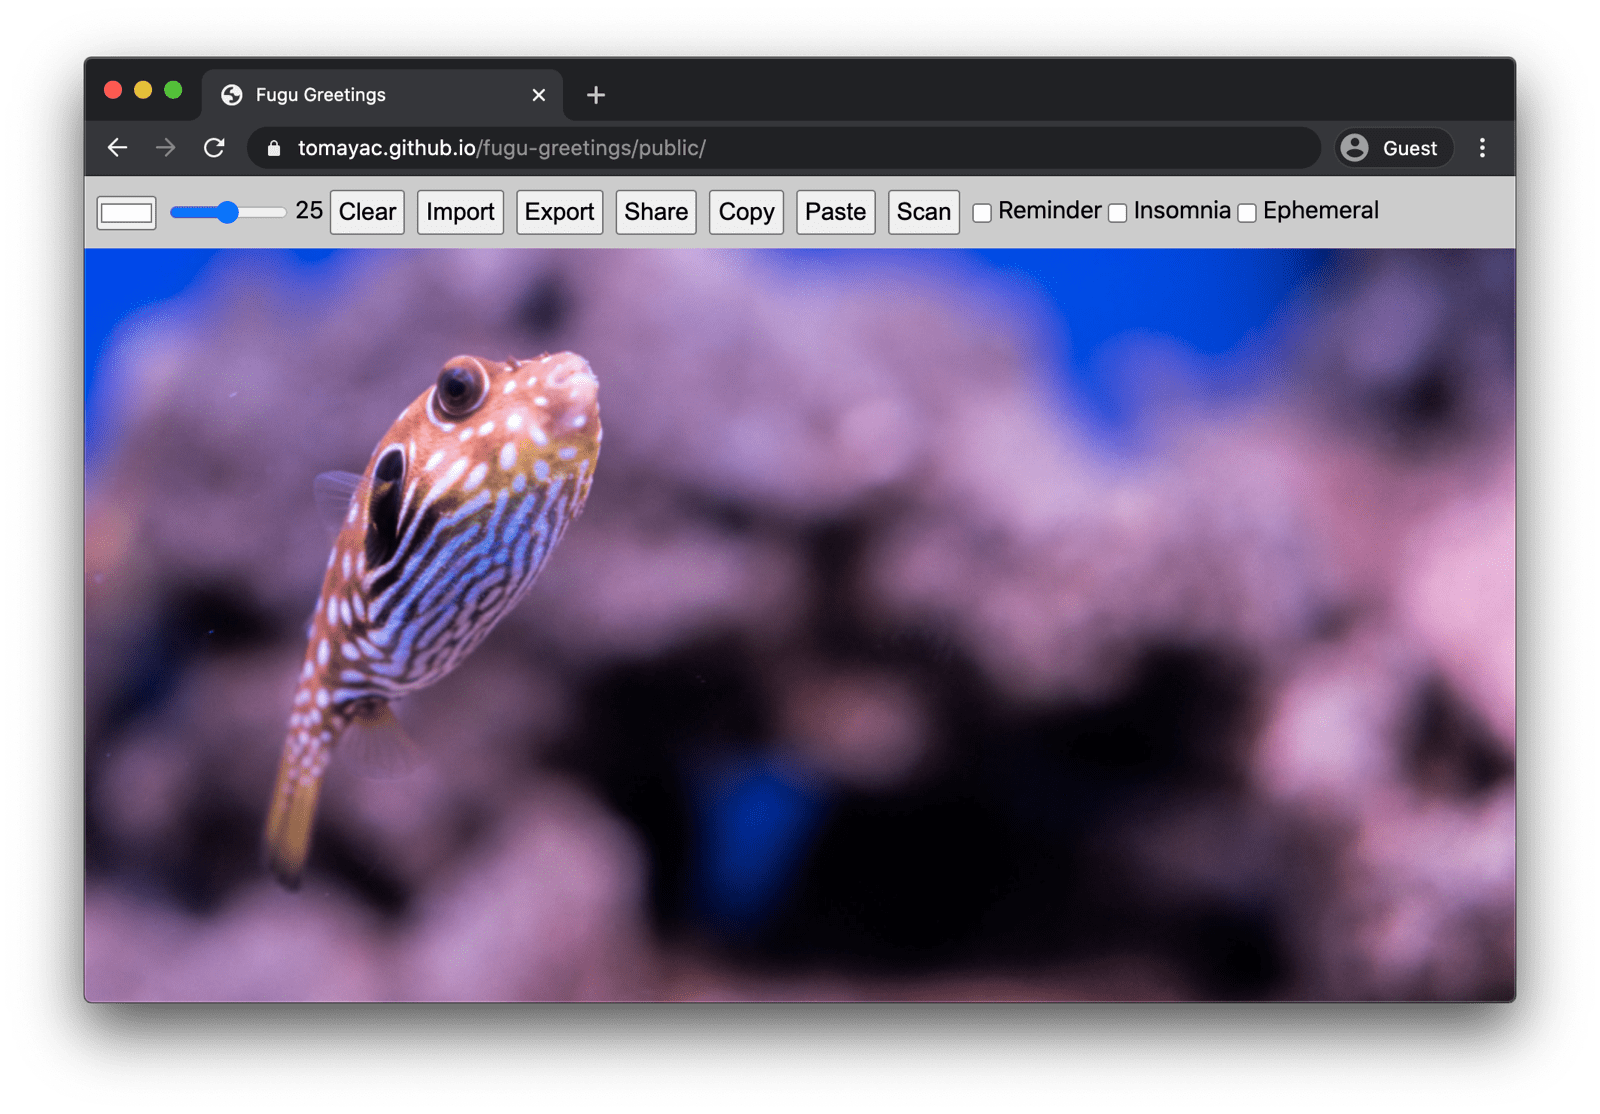 Fugu Greetings running on desktop Chrome, showing many available features.